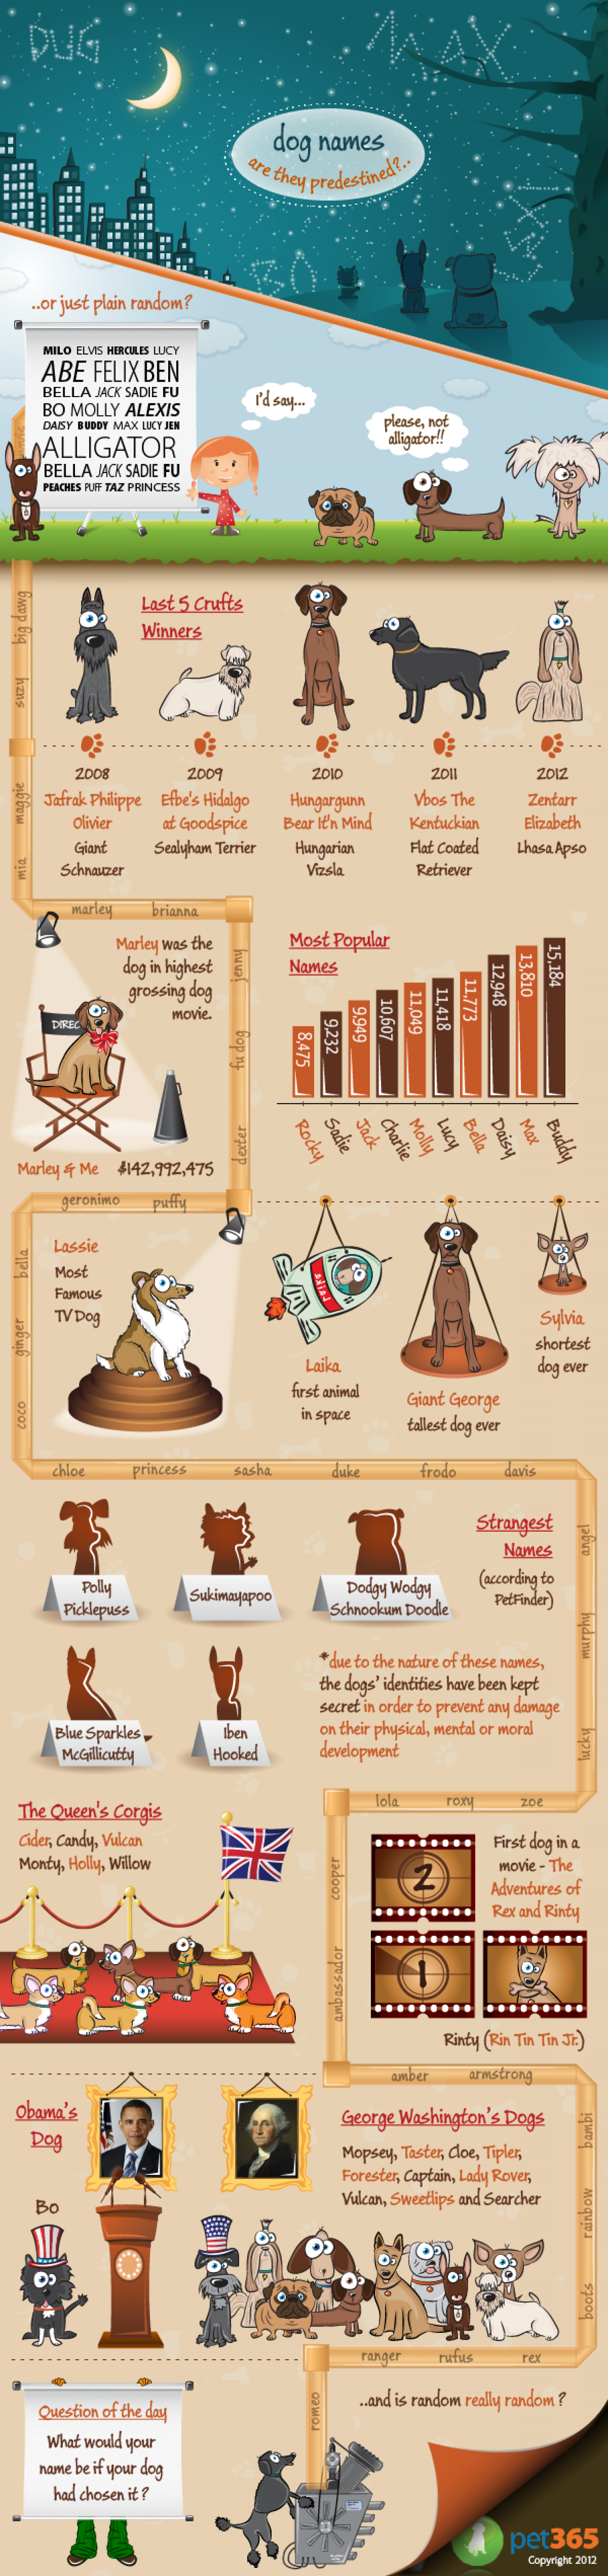 Dog Names - Crazy to Sublime Infographic